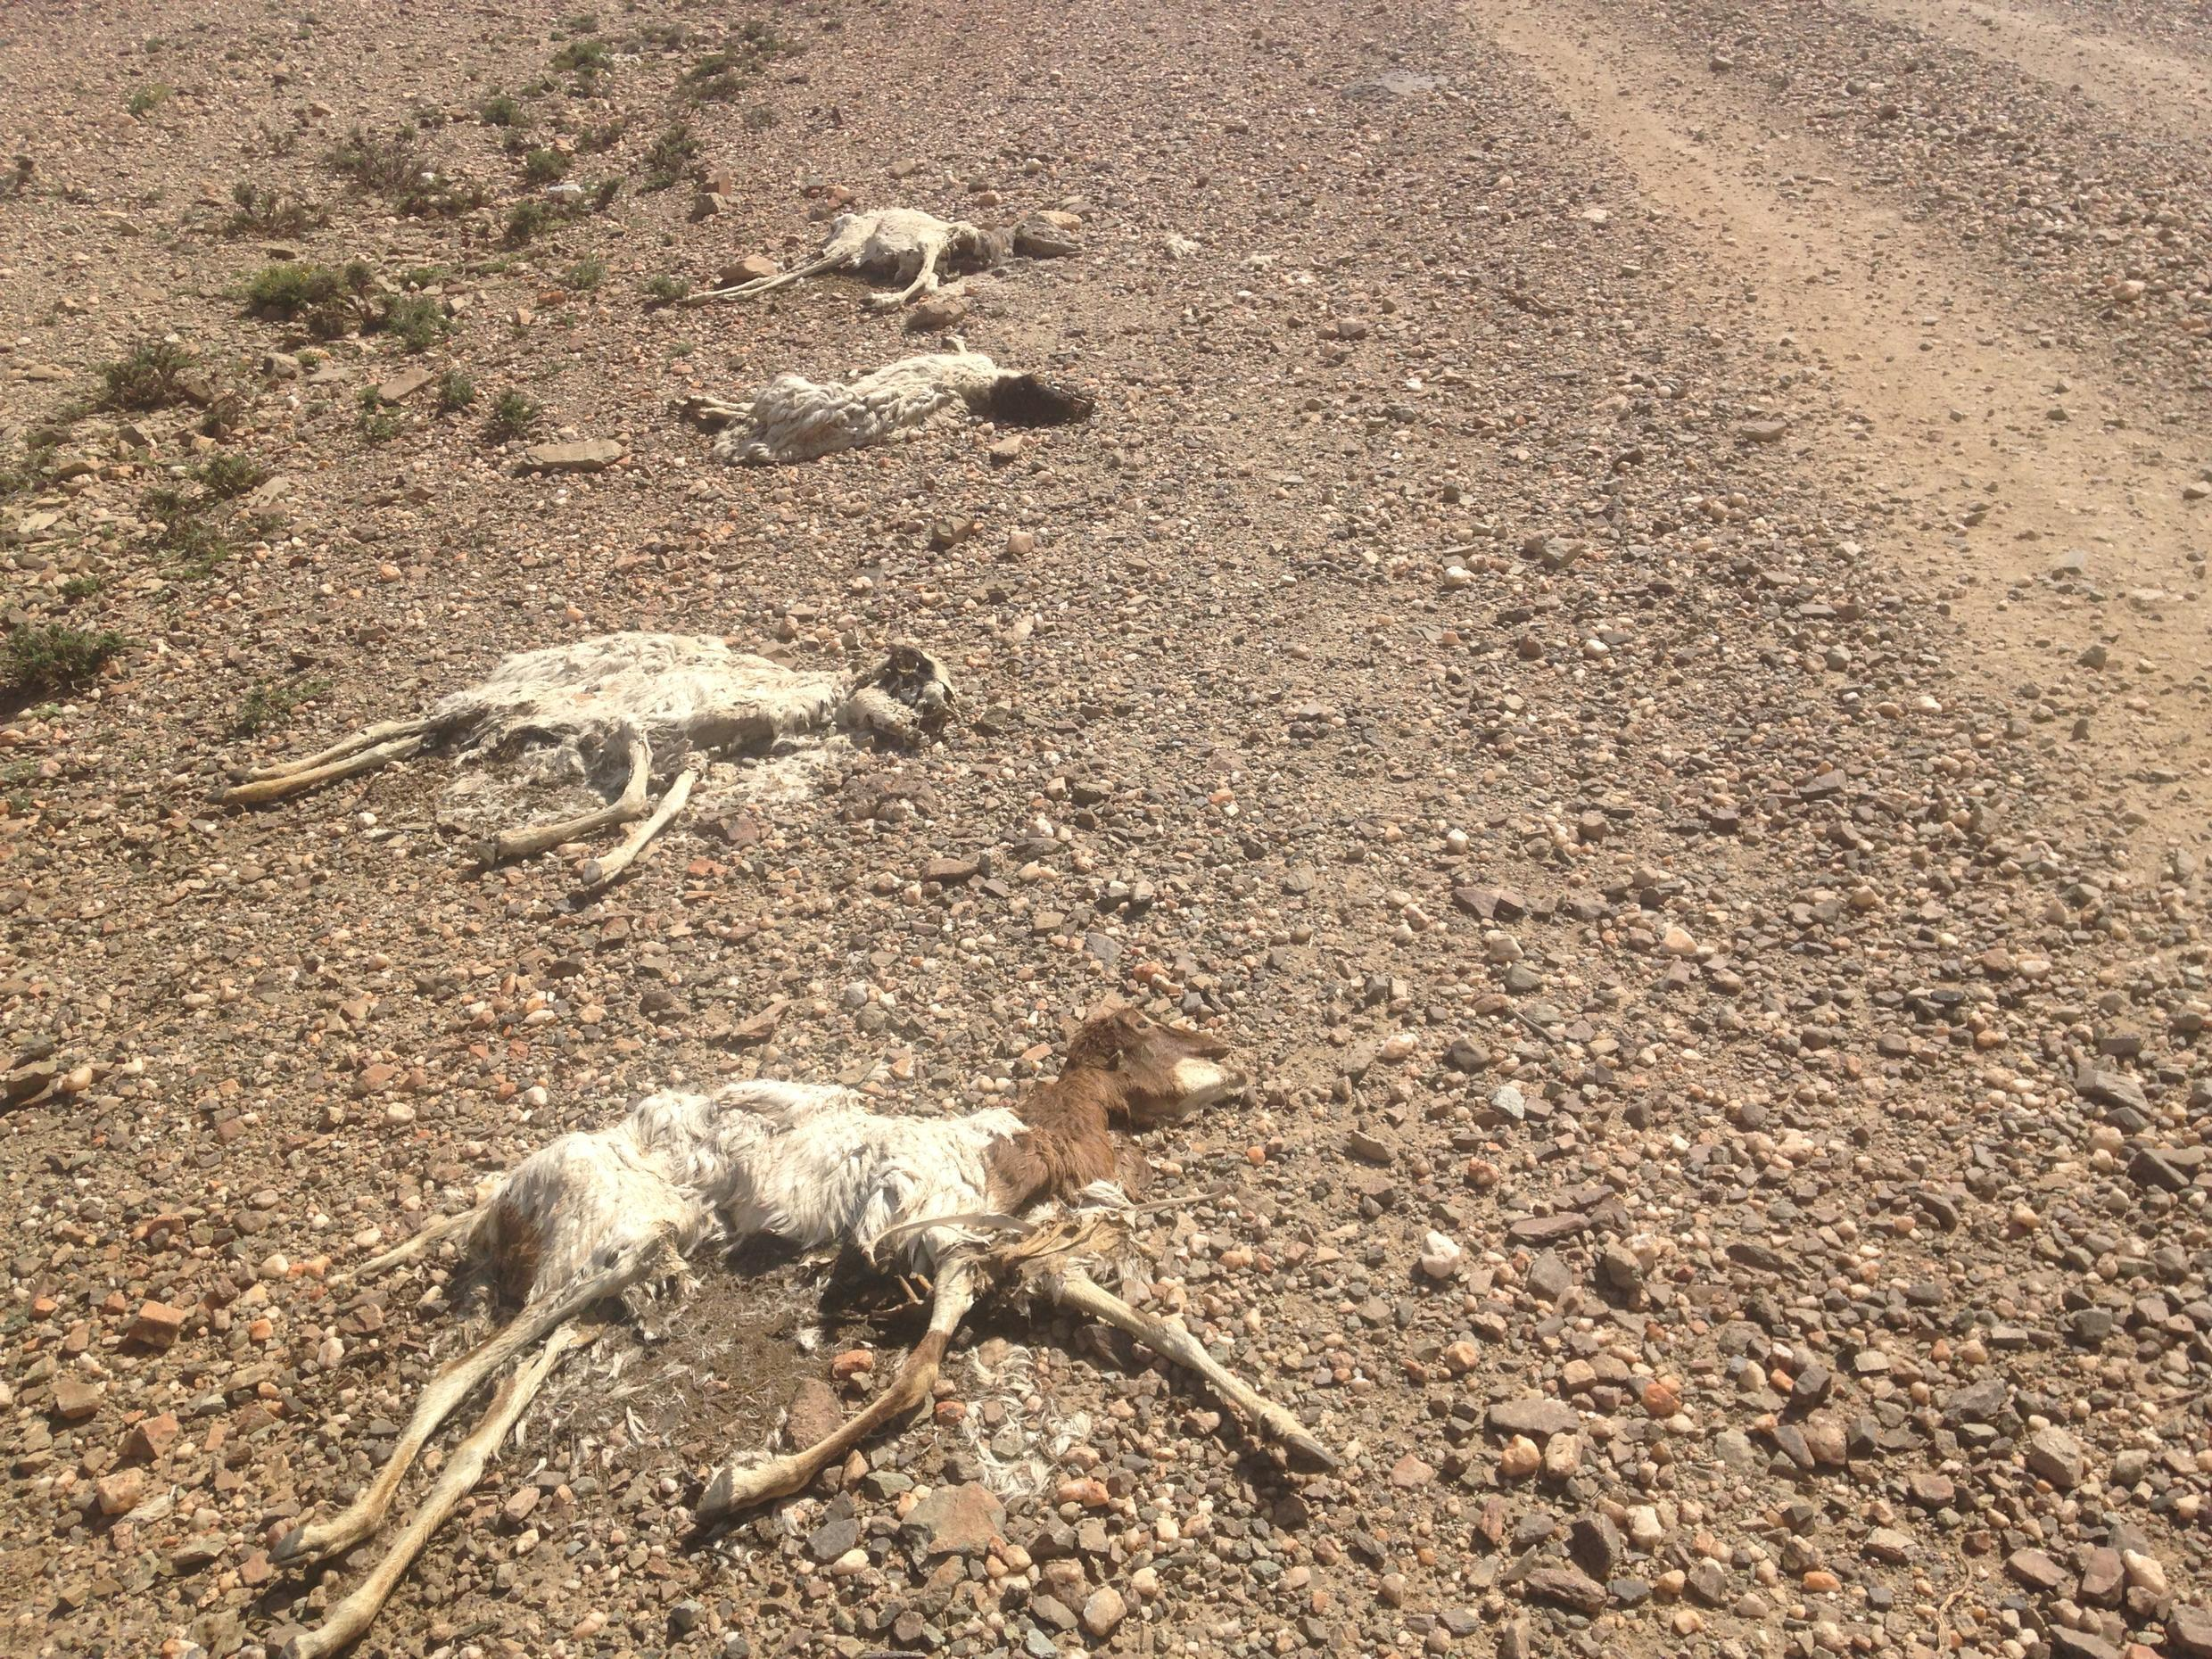 A dead mother goat and her three kids by the side of the road, Awdal region, Somaliland